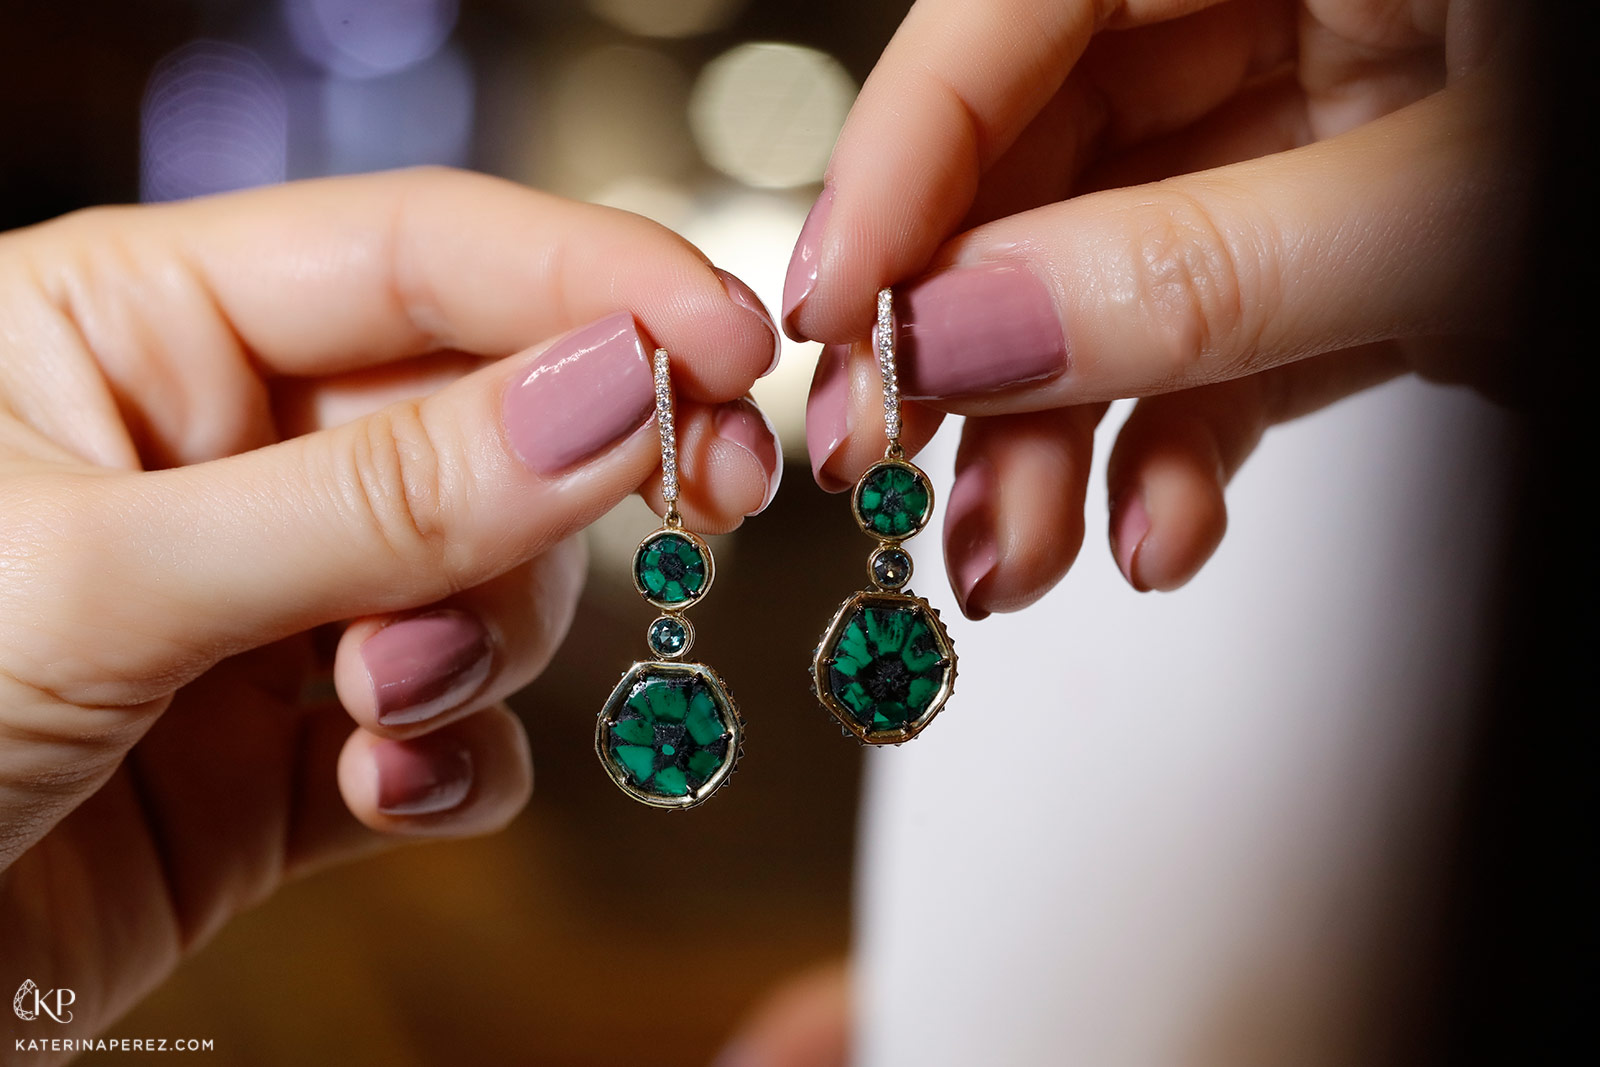 Omi Privé earrings with trapiche emeralds and diamonds set in gold